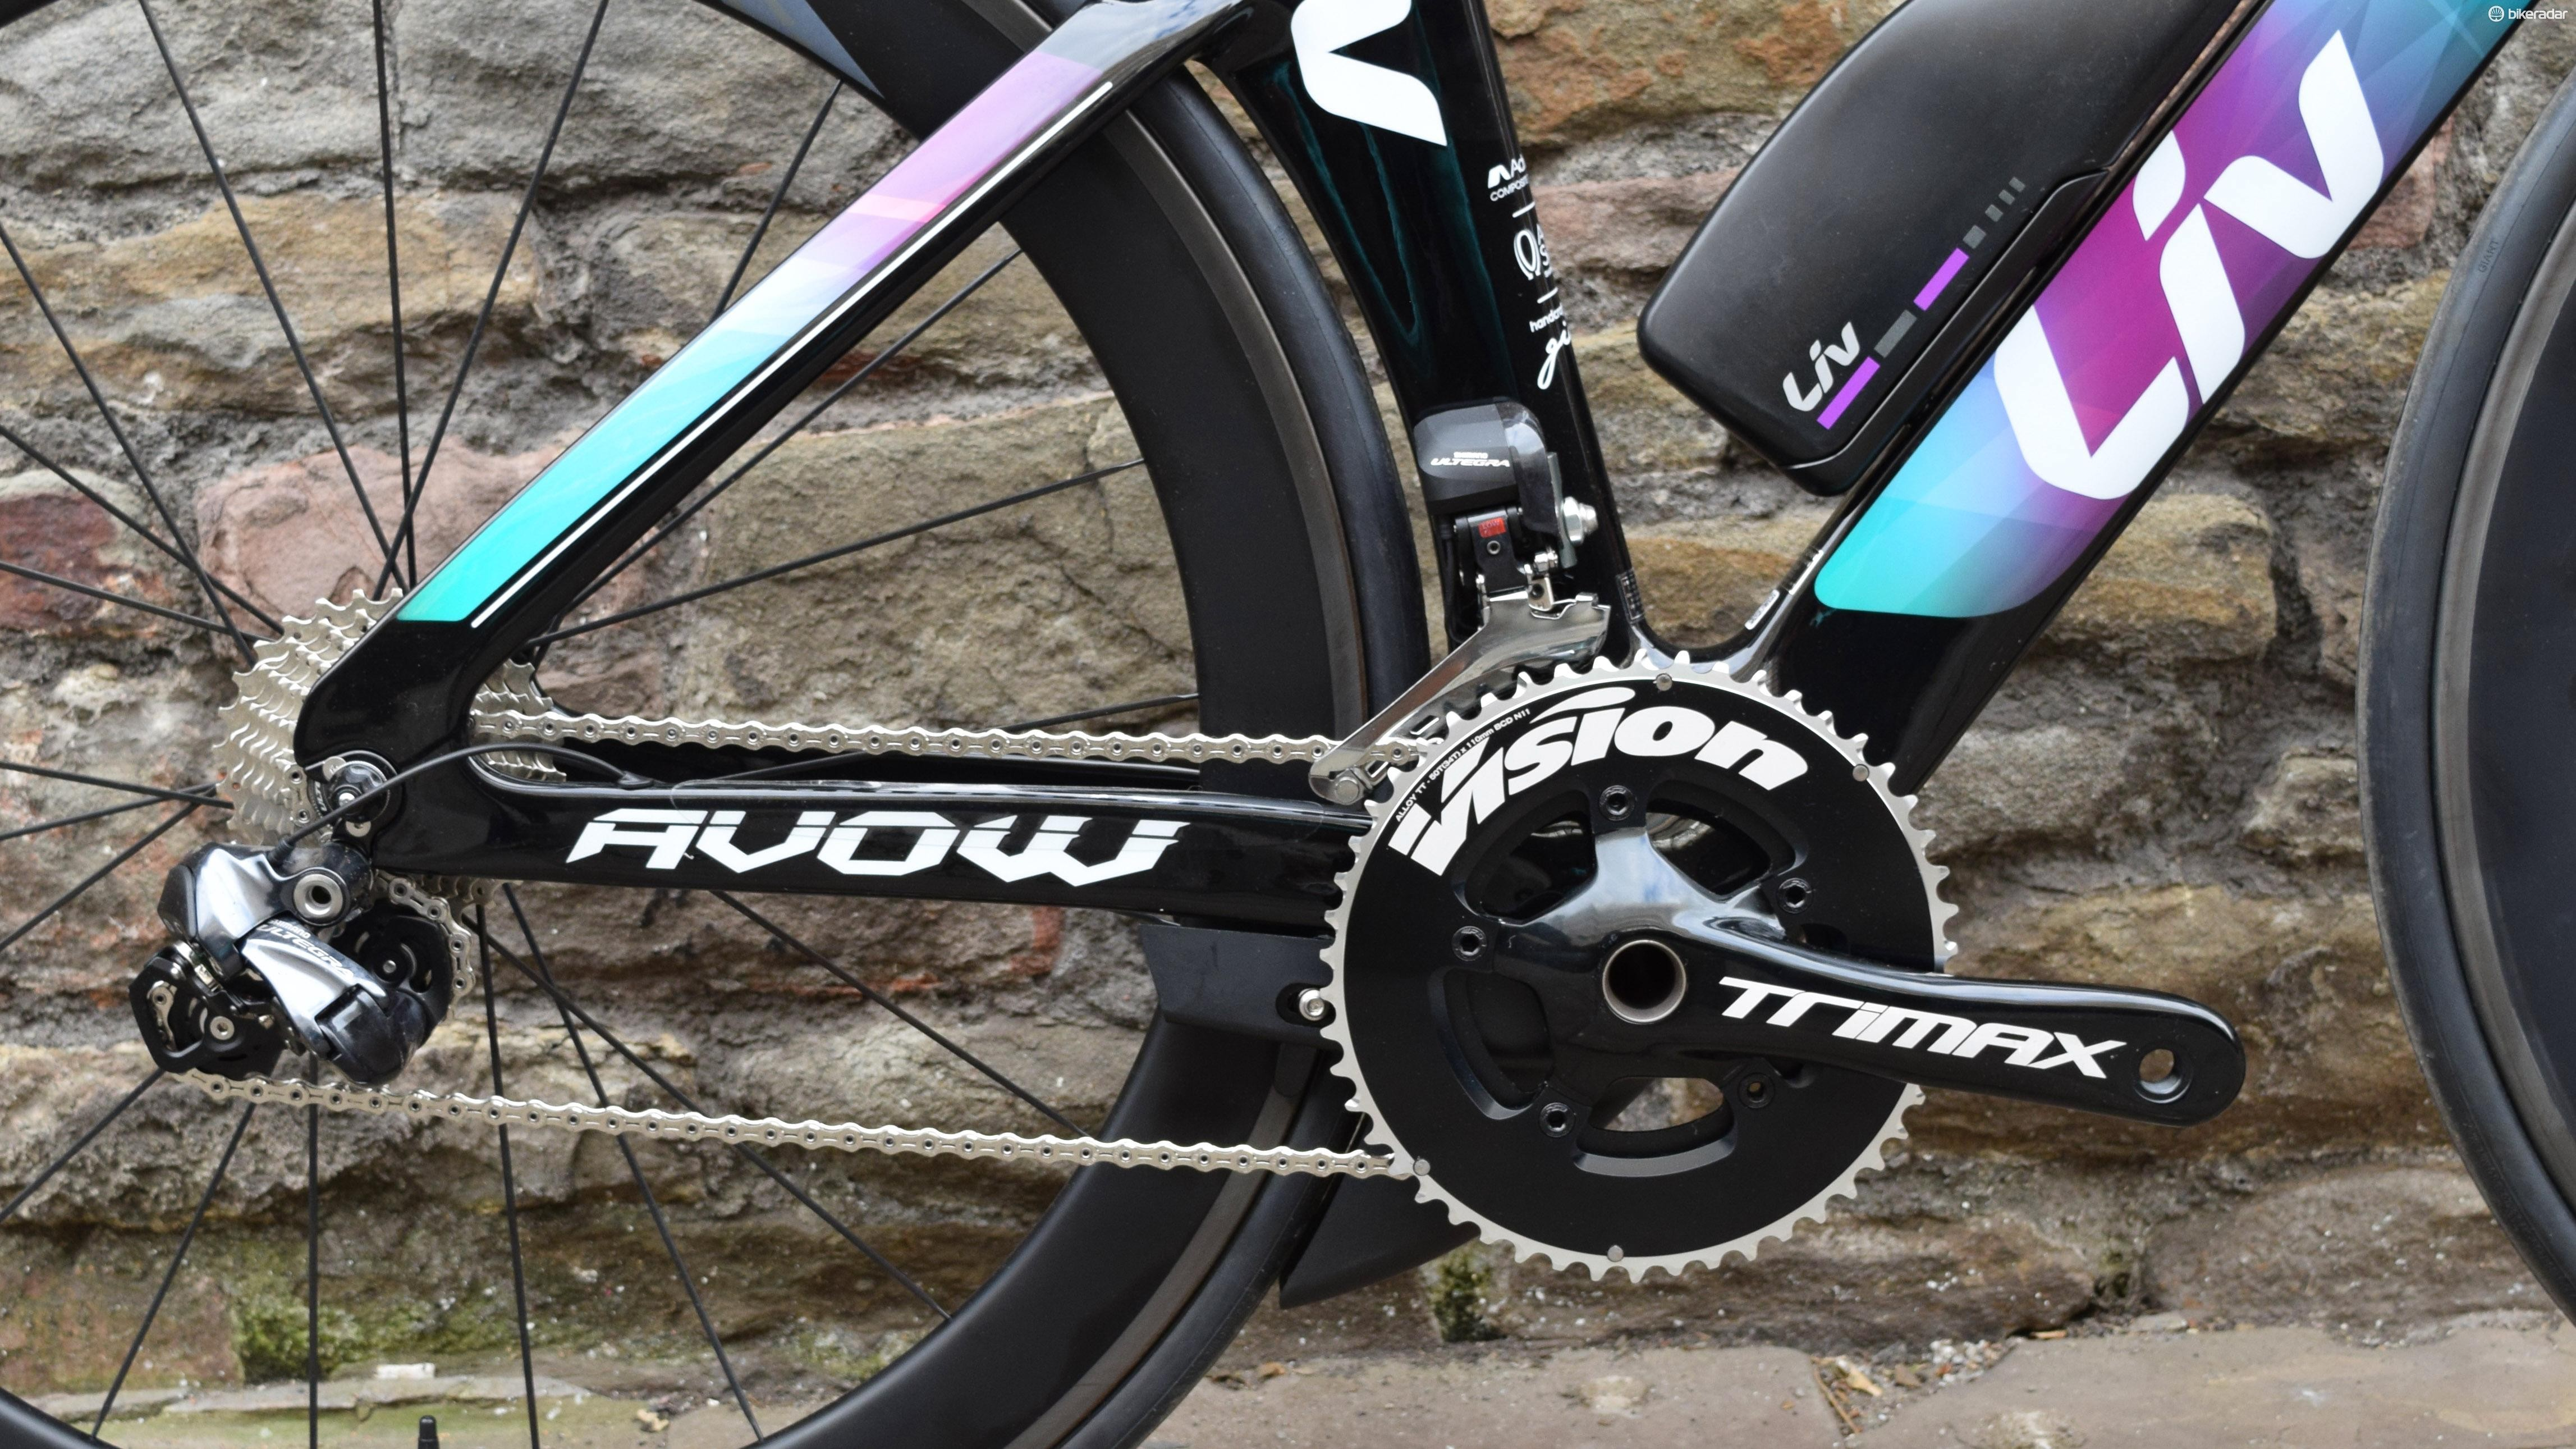 Gearing comes courtesy of Shimano Ultegra Di2, with an FSA Vision TRIMAX crankset